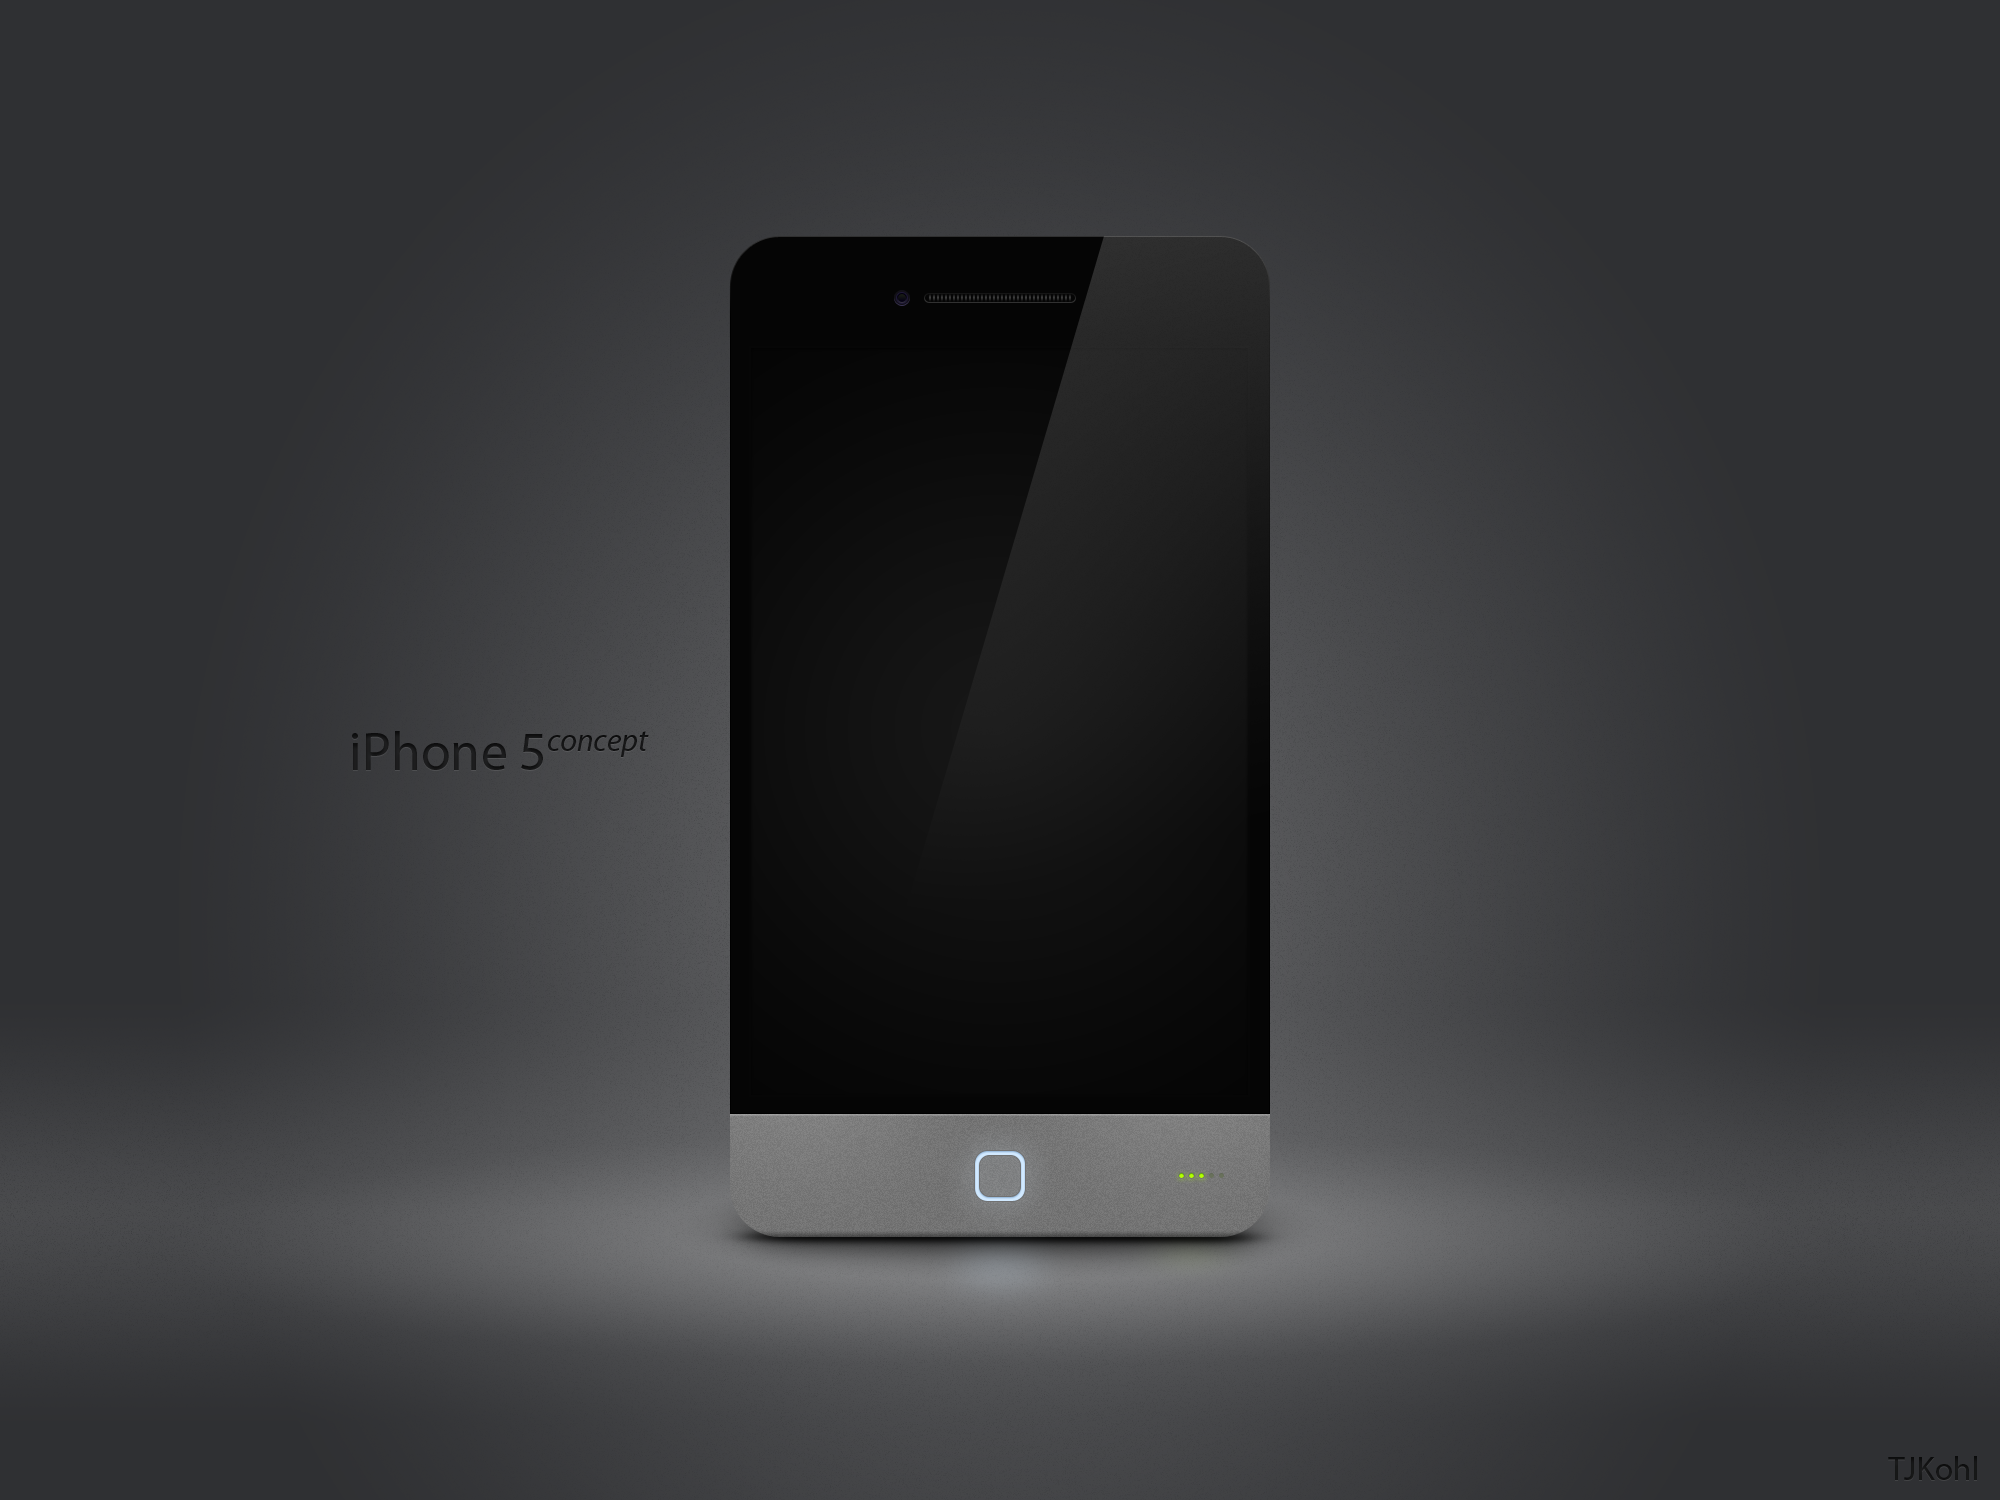 iPhone 5 Concept by tjkohli